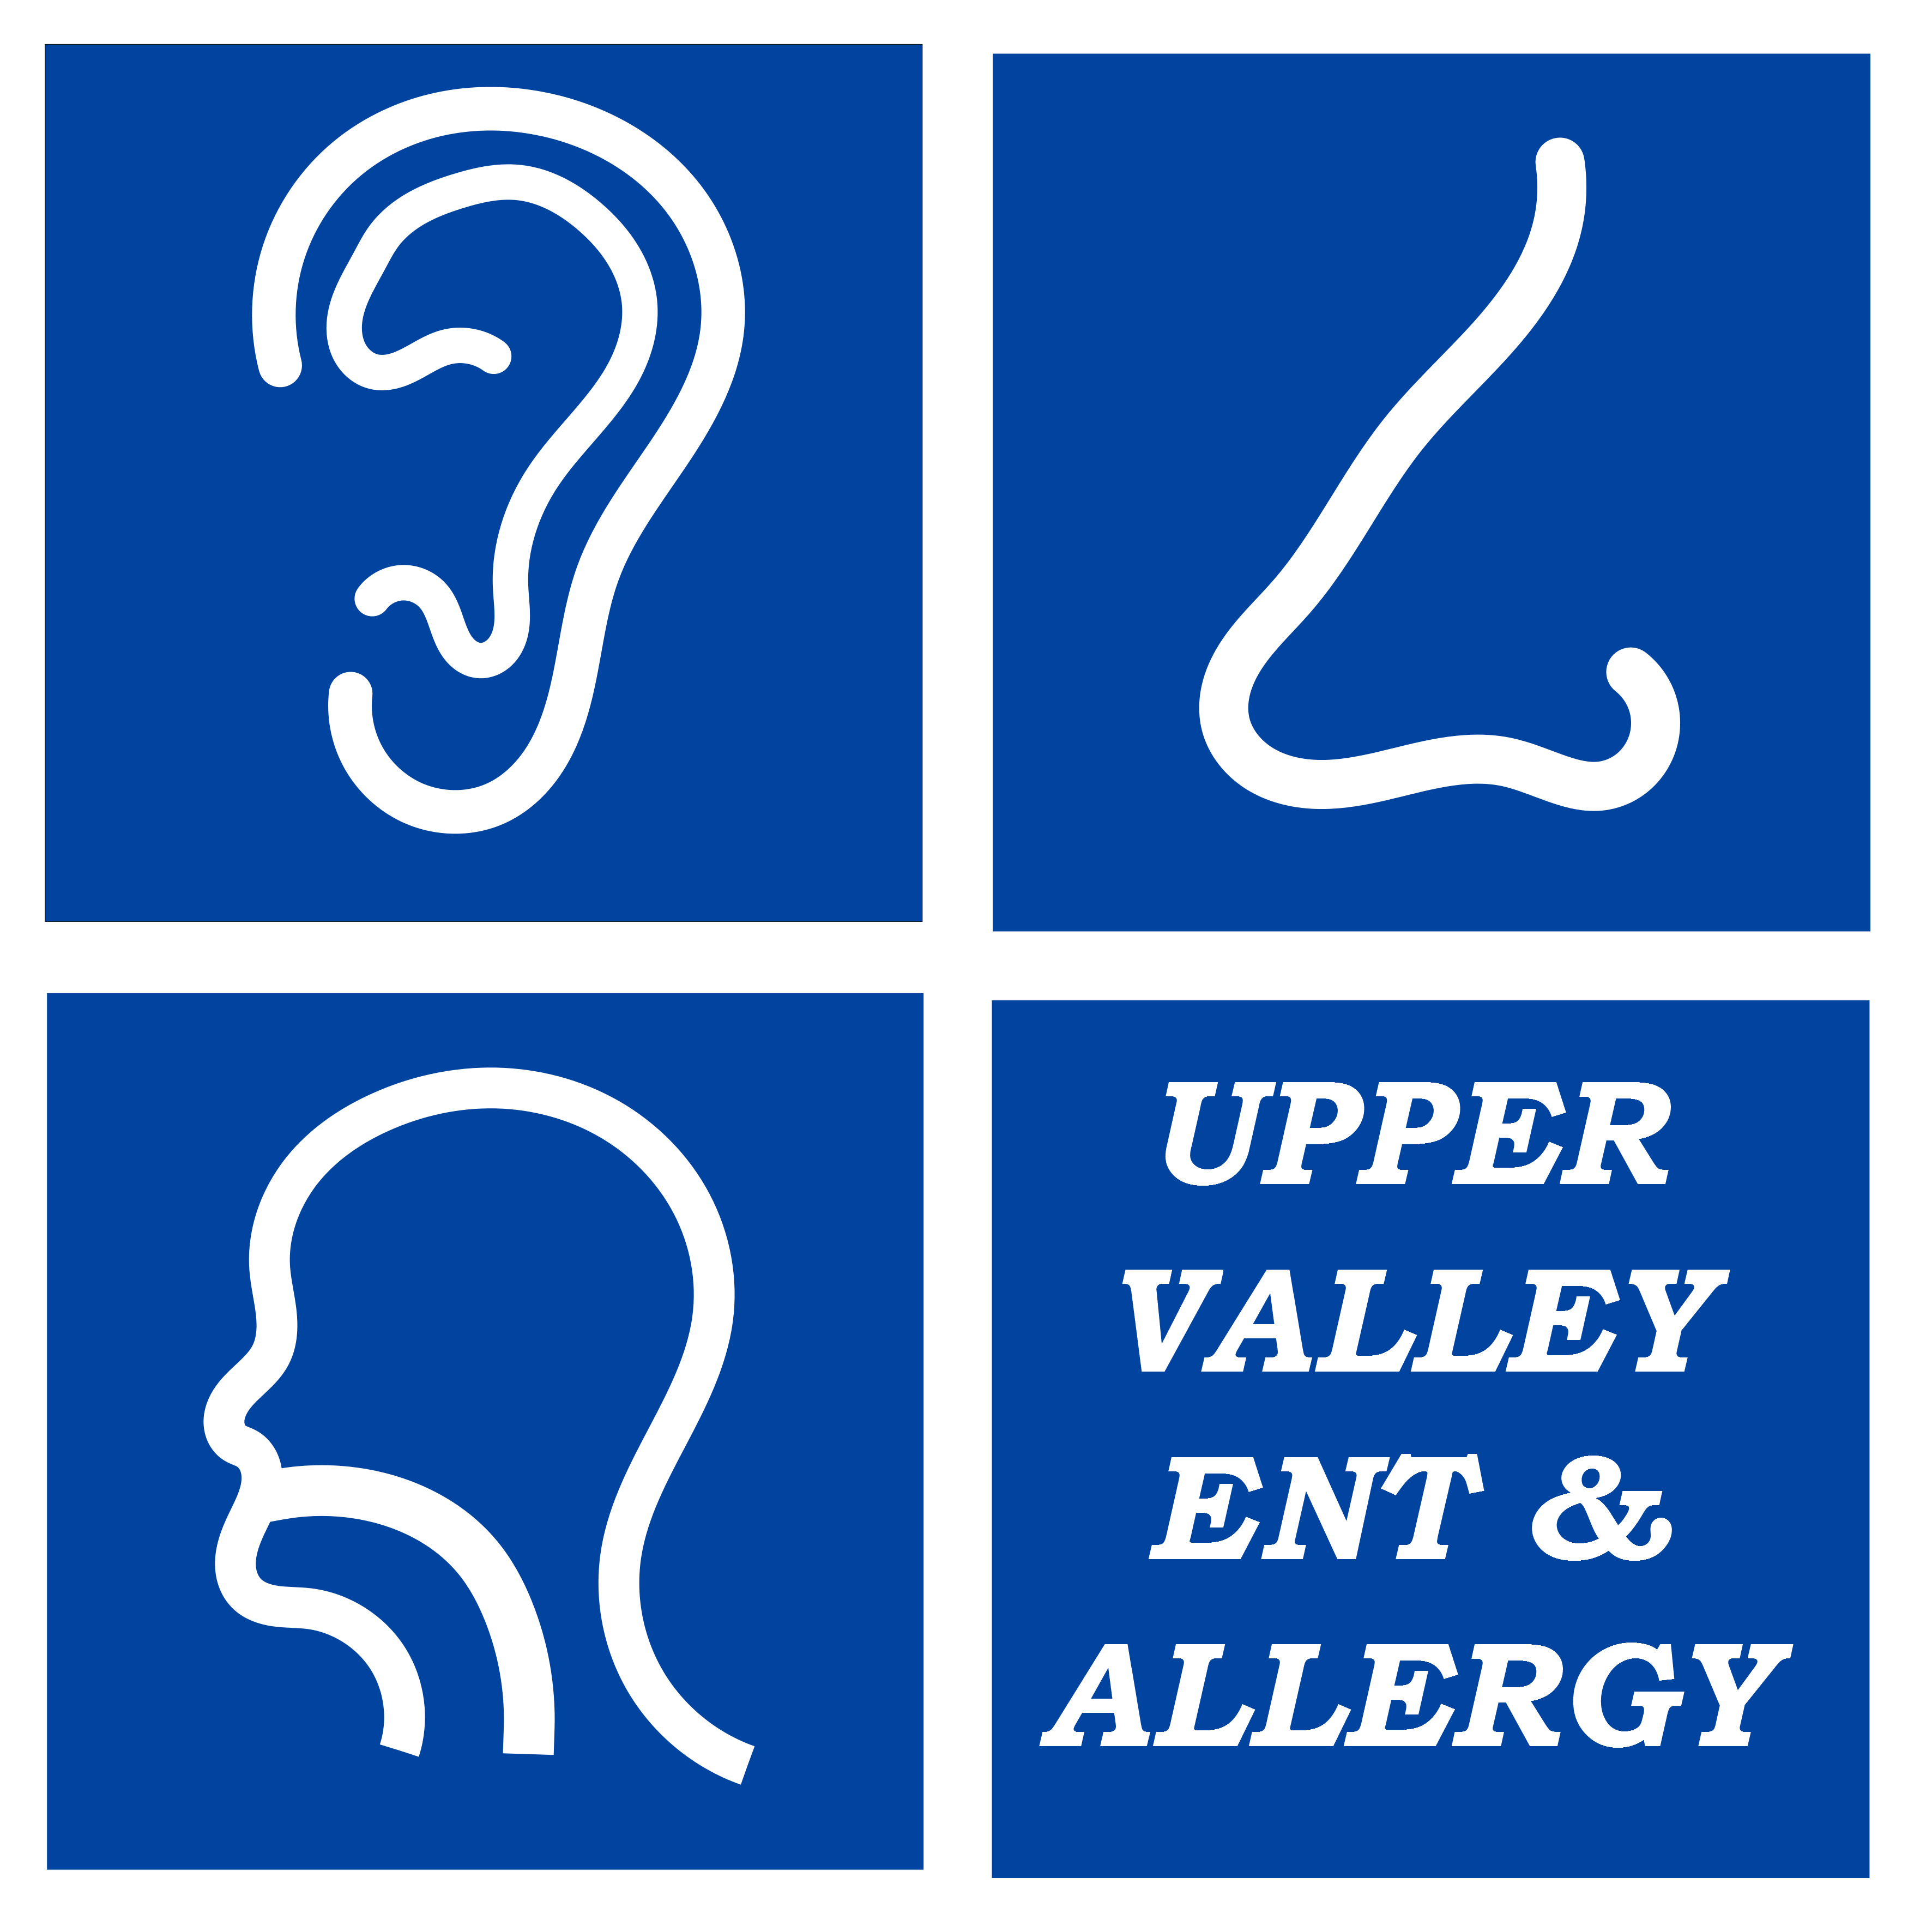 Upper Valley ENT & Allergy Logo